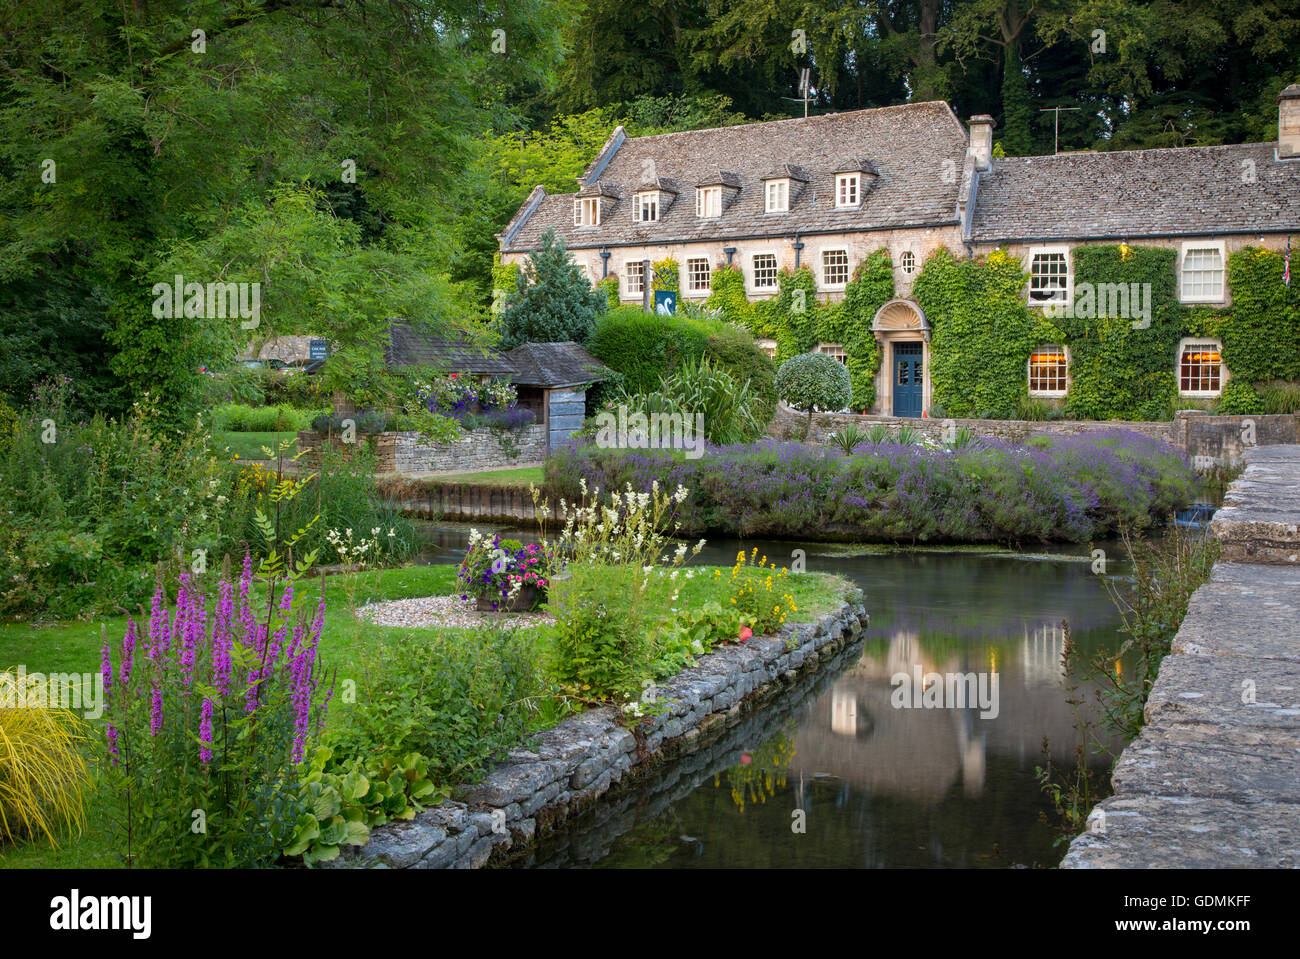 View of River Coln and Swan Hotel in the Cotswolds village of Bibury, Gloucestershire, England - Stock Image